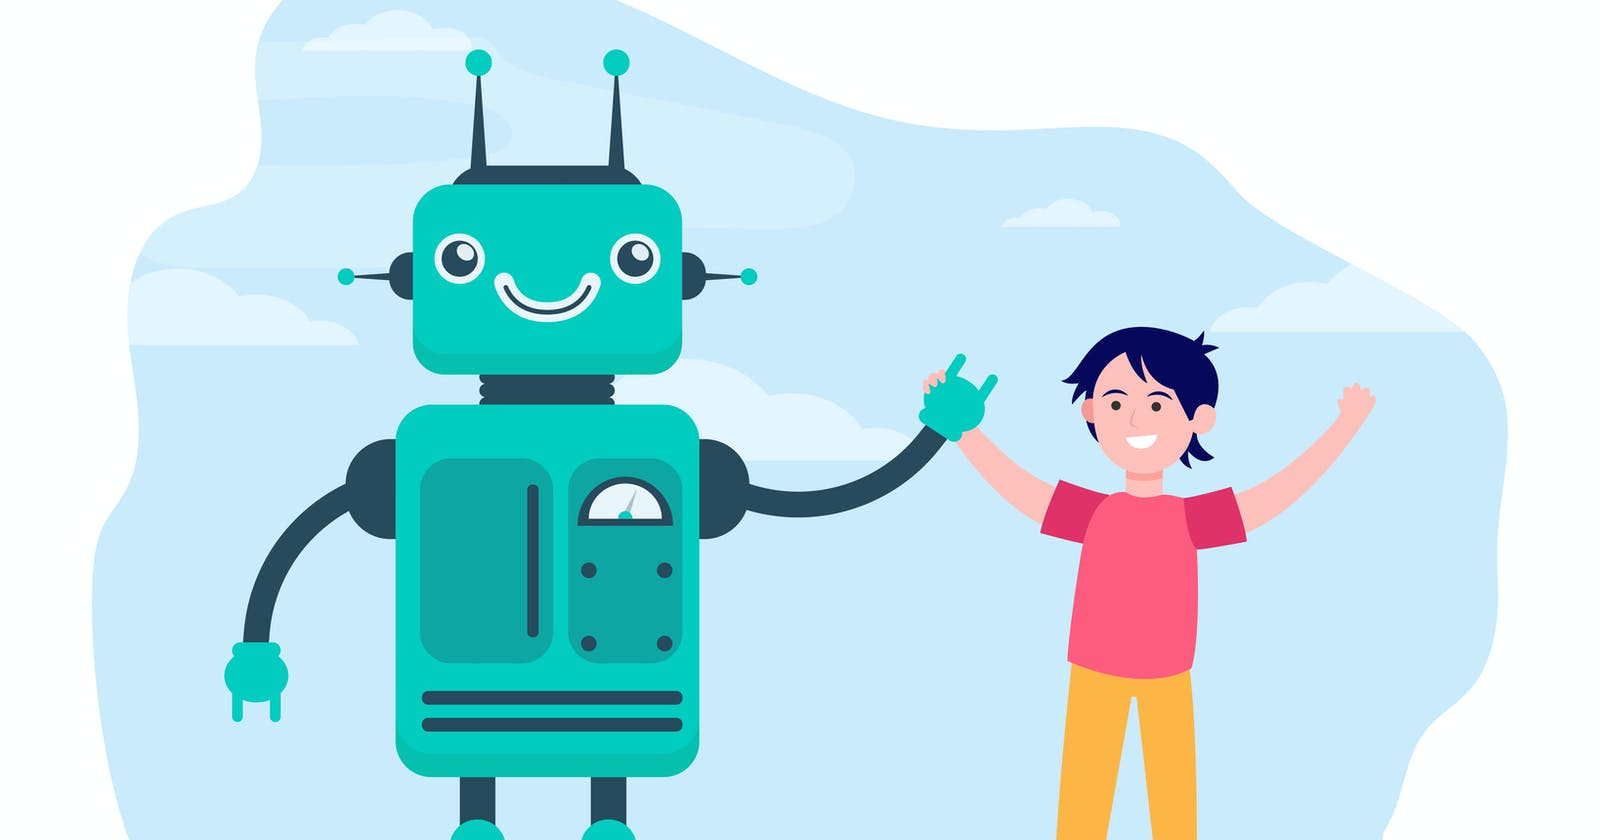 How to make a simple telegram bot on python